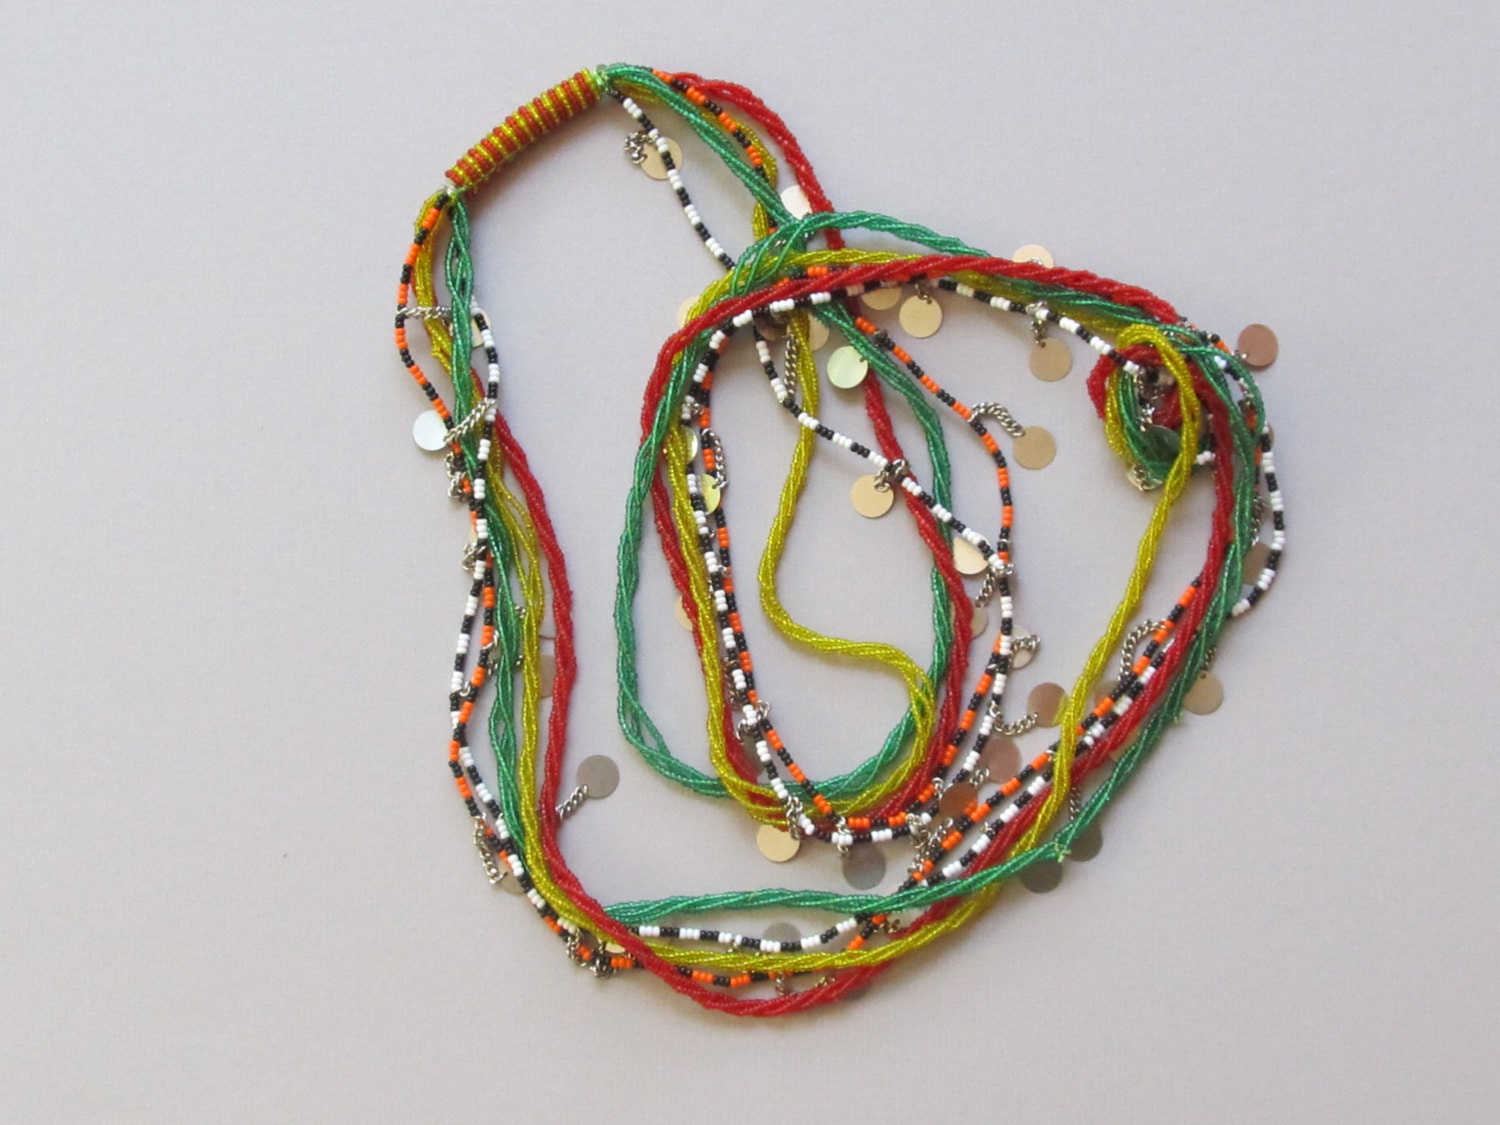 maasai beaded necklace from kenya kmn 1